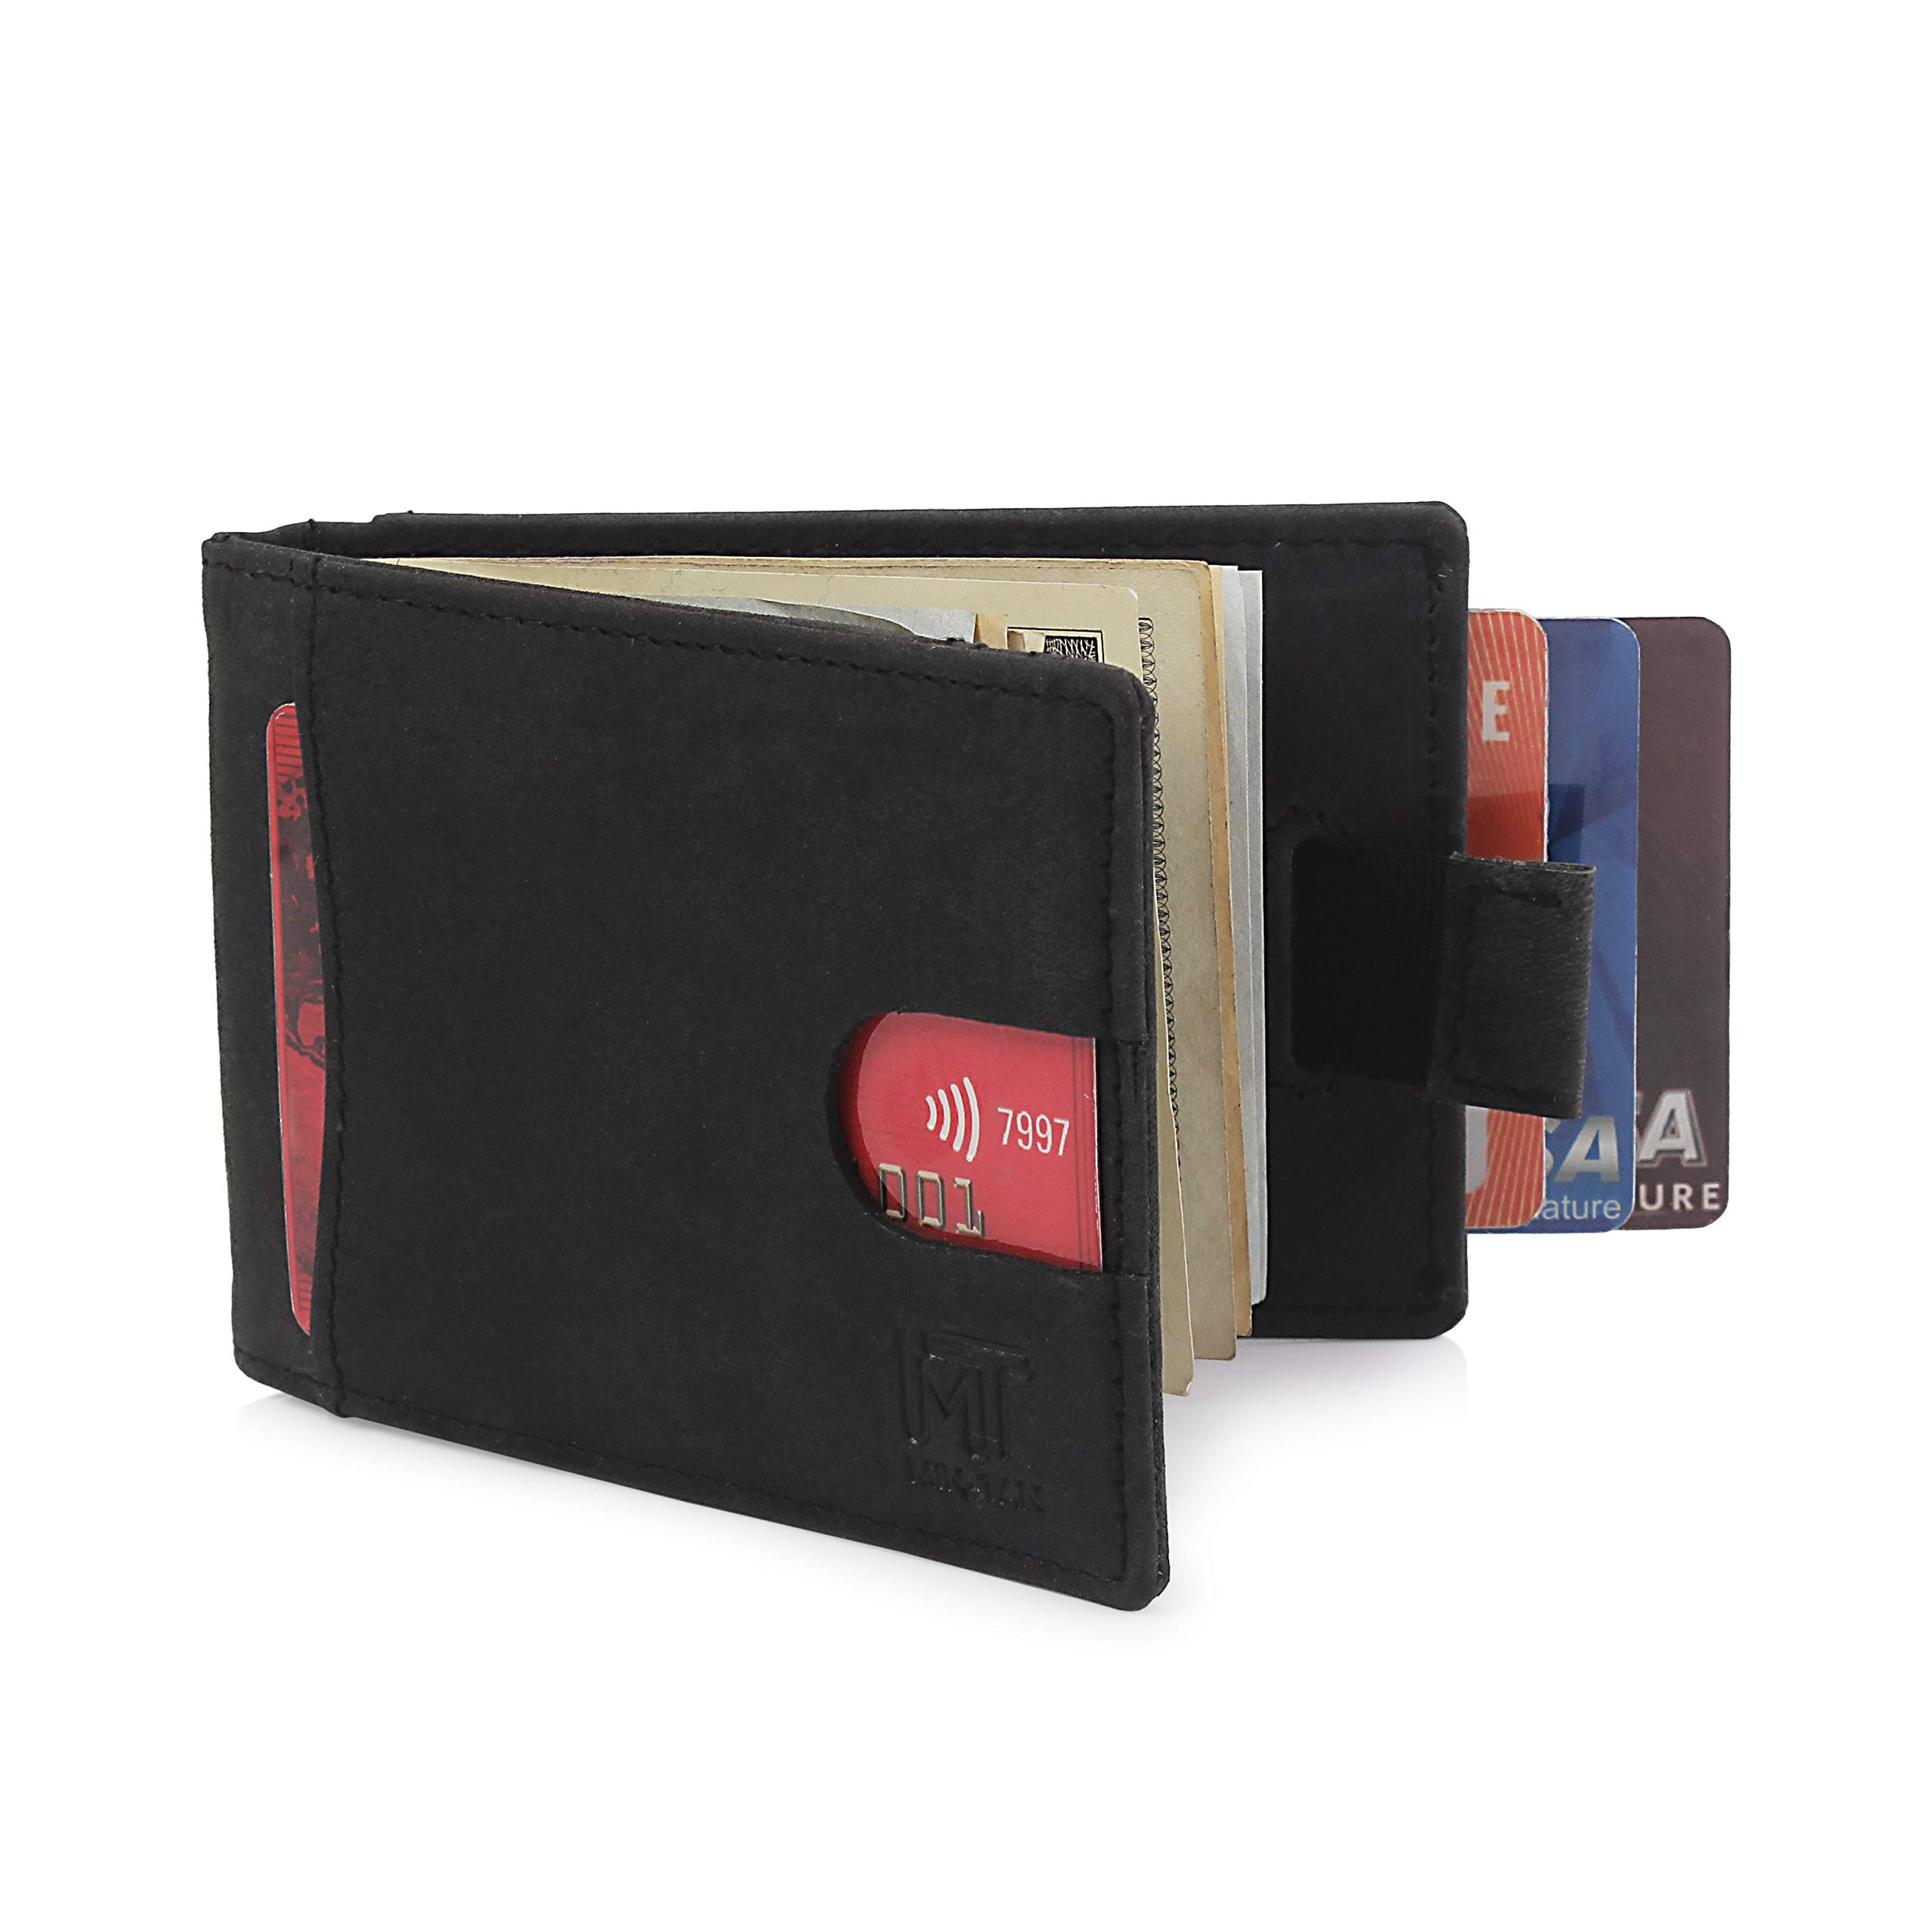 MIN-TAN RFID Blocking Slim Bifold Genuine Leather Minimalist Front Pocket Wallets for Men with Money Clip